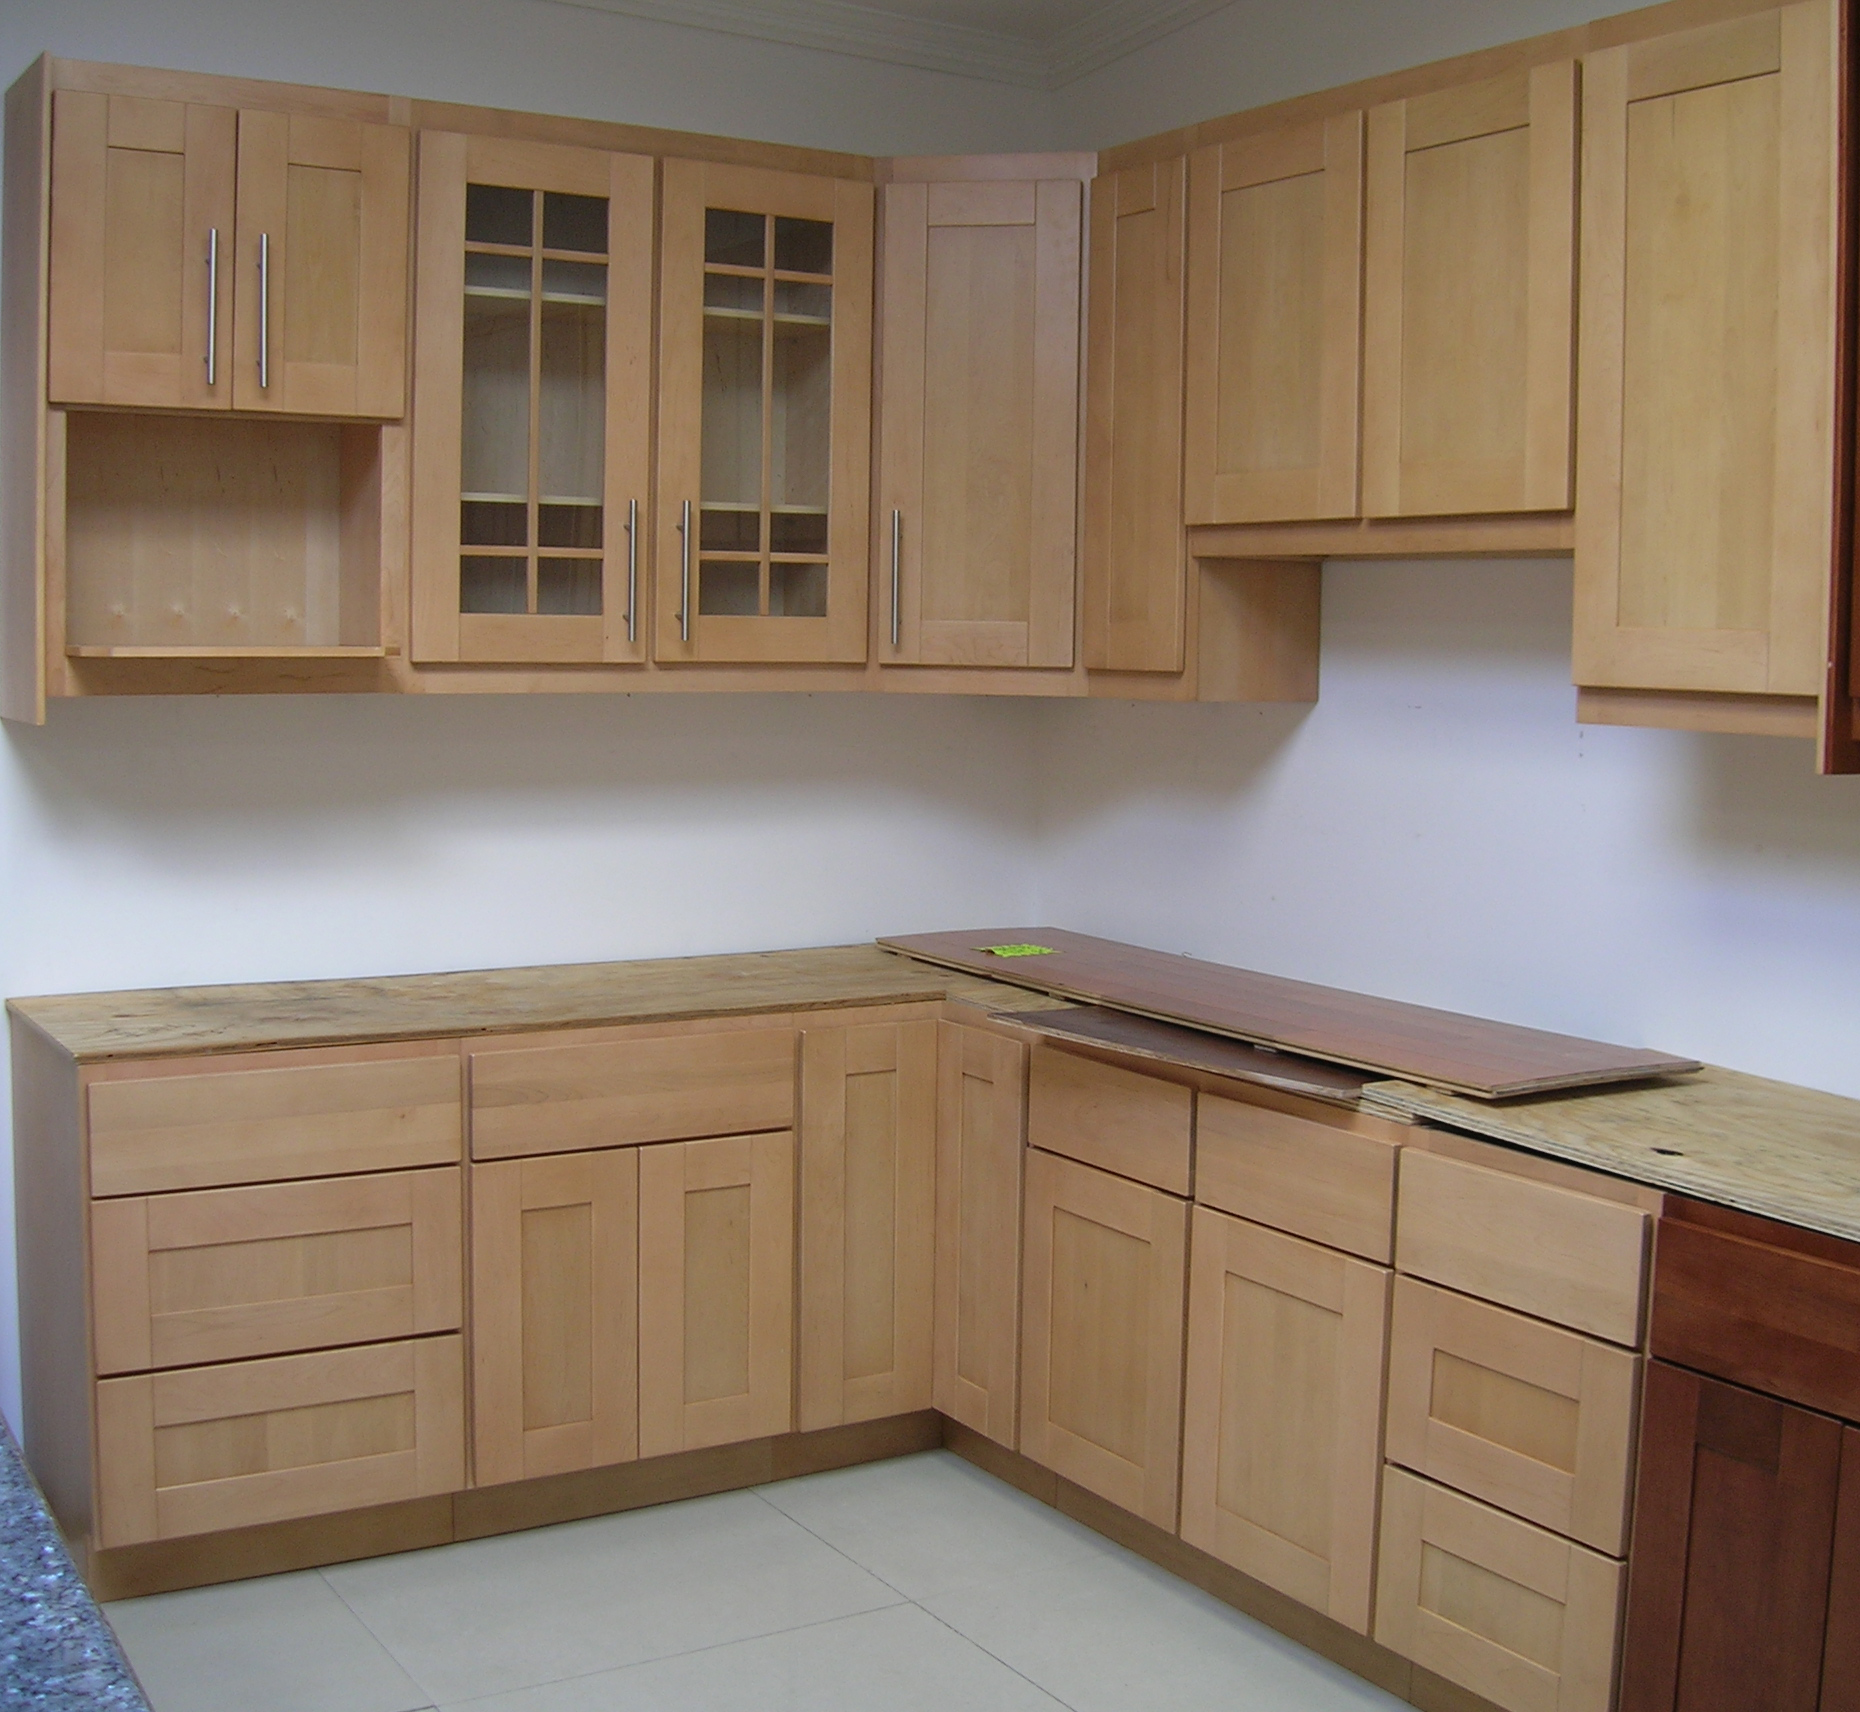 allcabinets cabinet kitchen Natural Maple Wholesale Kitchen Cabinets Maple Shaker